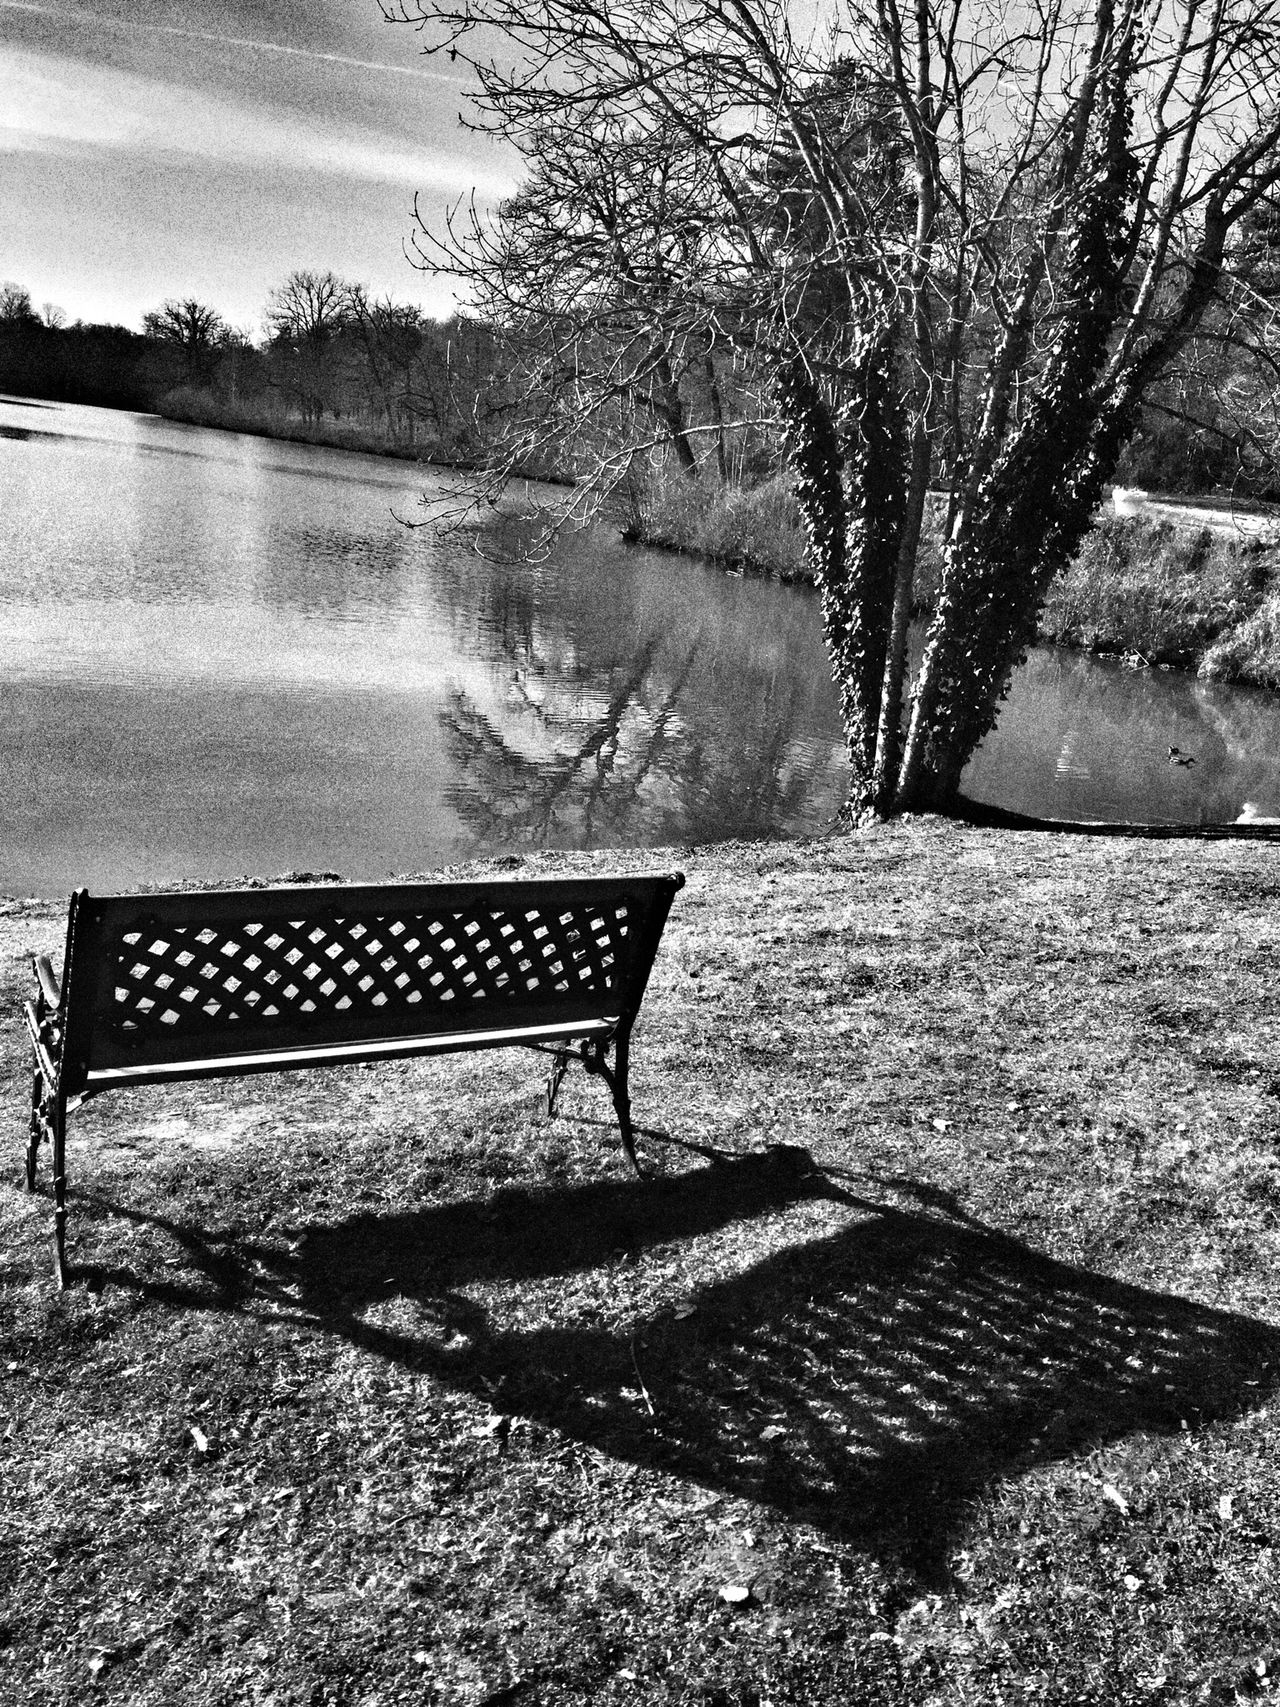 Abbey Beautiful Place Monochrome Blackandwhite Reflections Water_collection Water